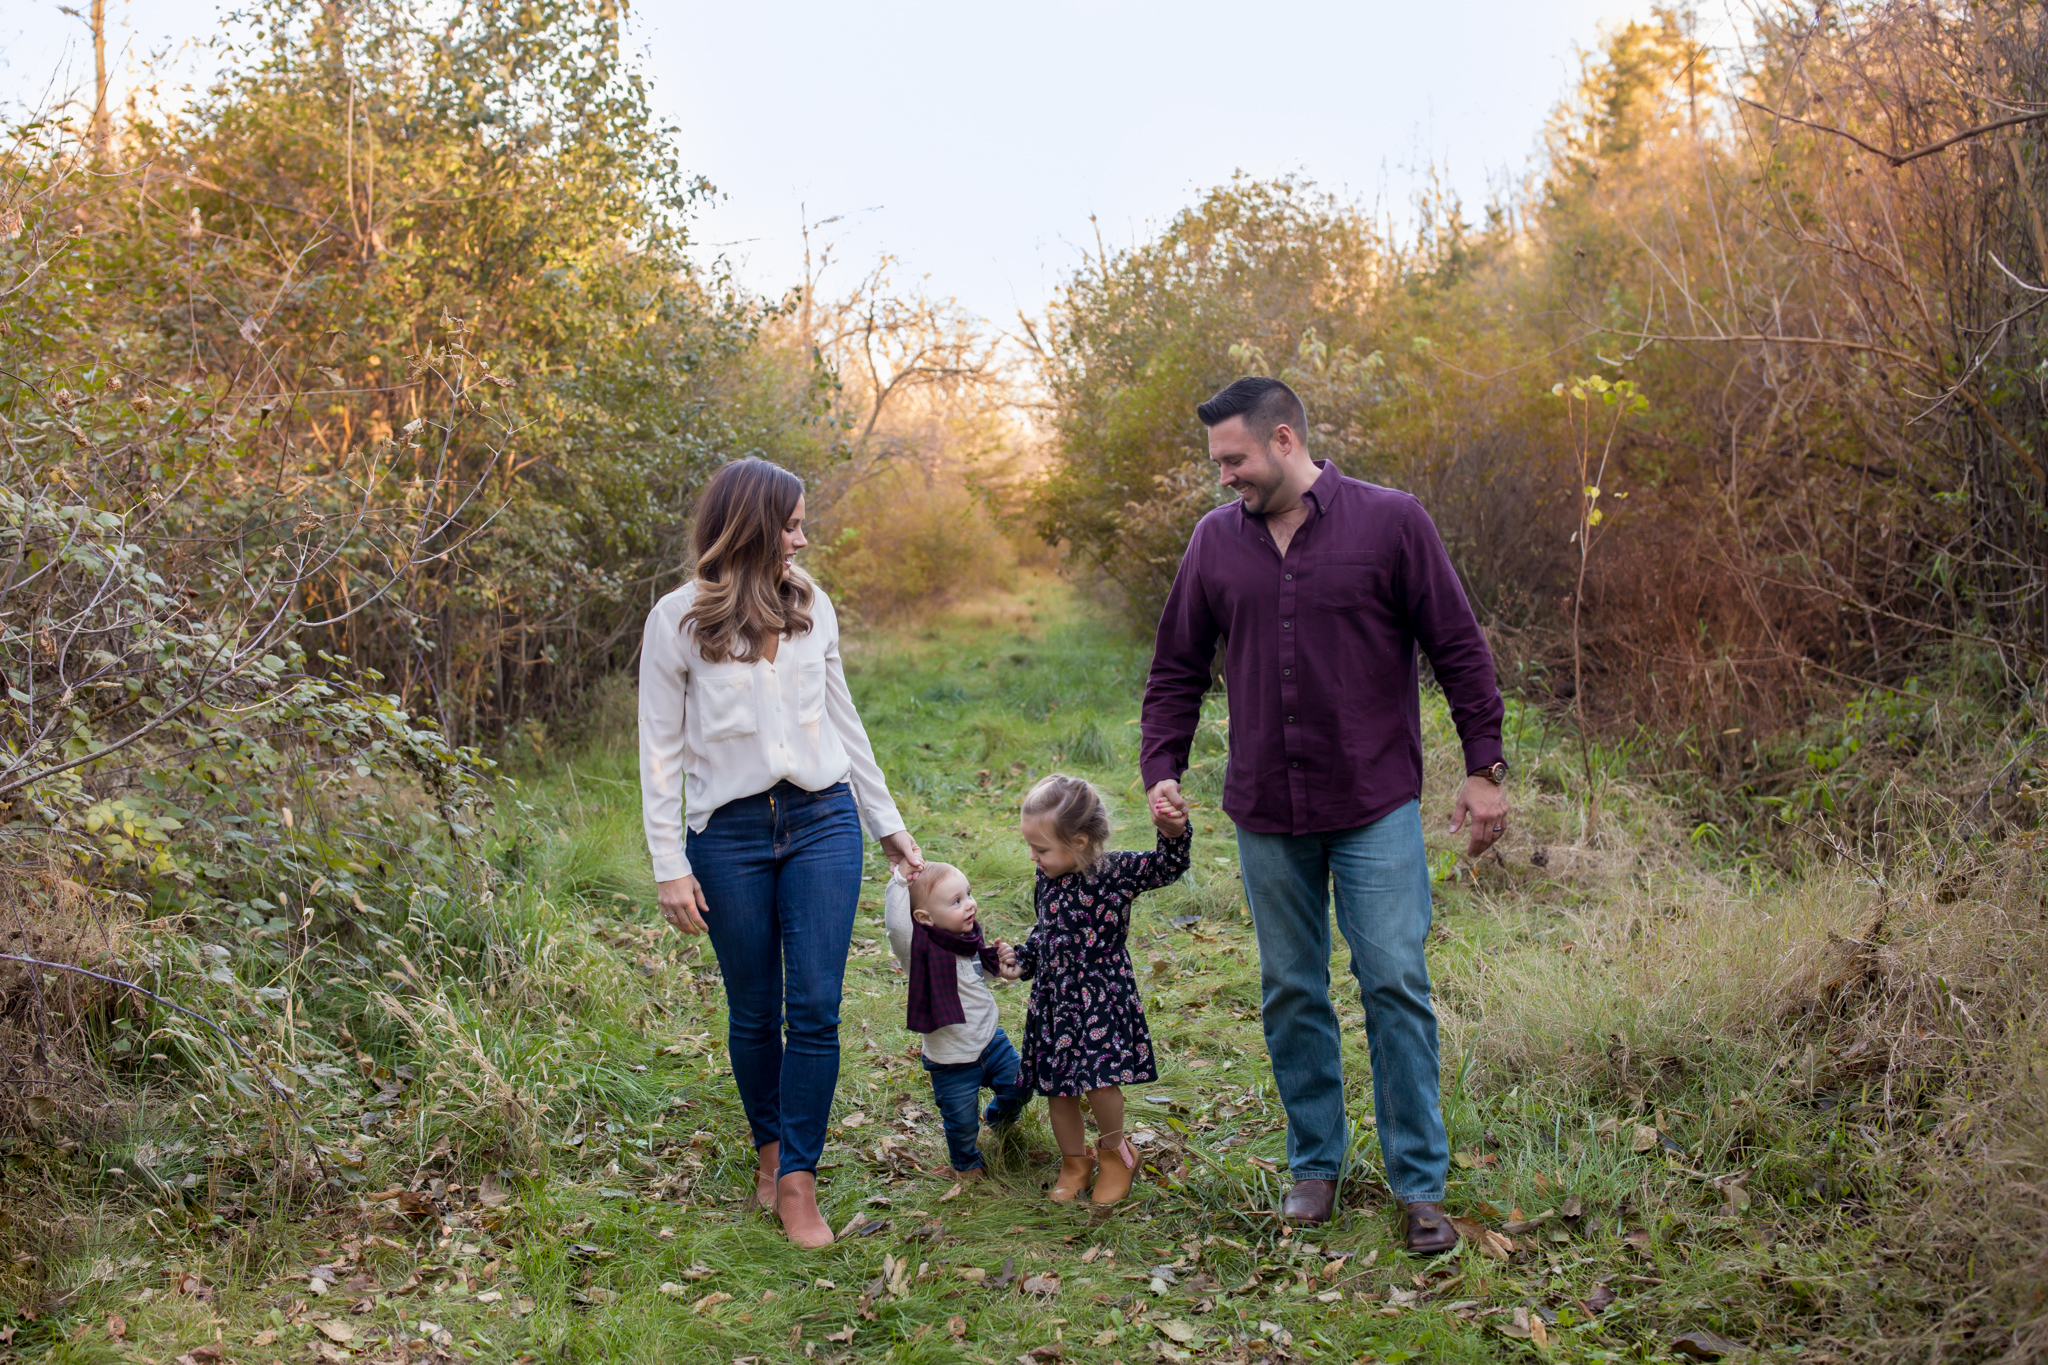 Hailey Family Fall Session, 2 kinds, family poses with young kids, Cara Peterson Photography Rockford IL-6.jpg